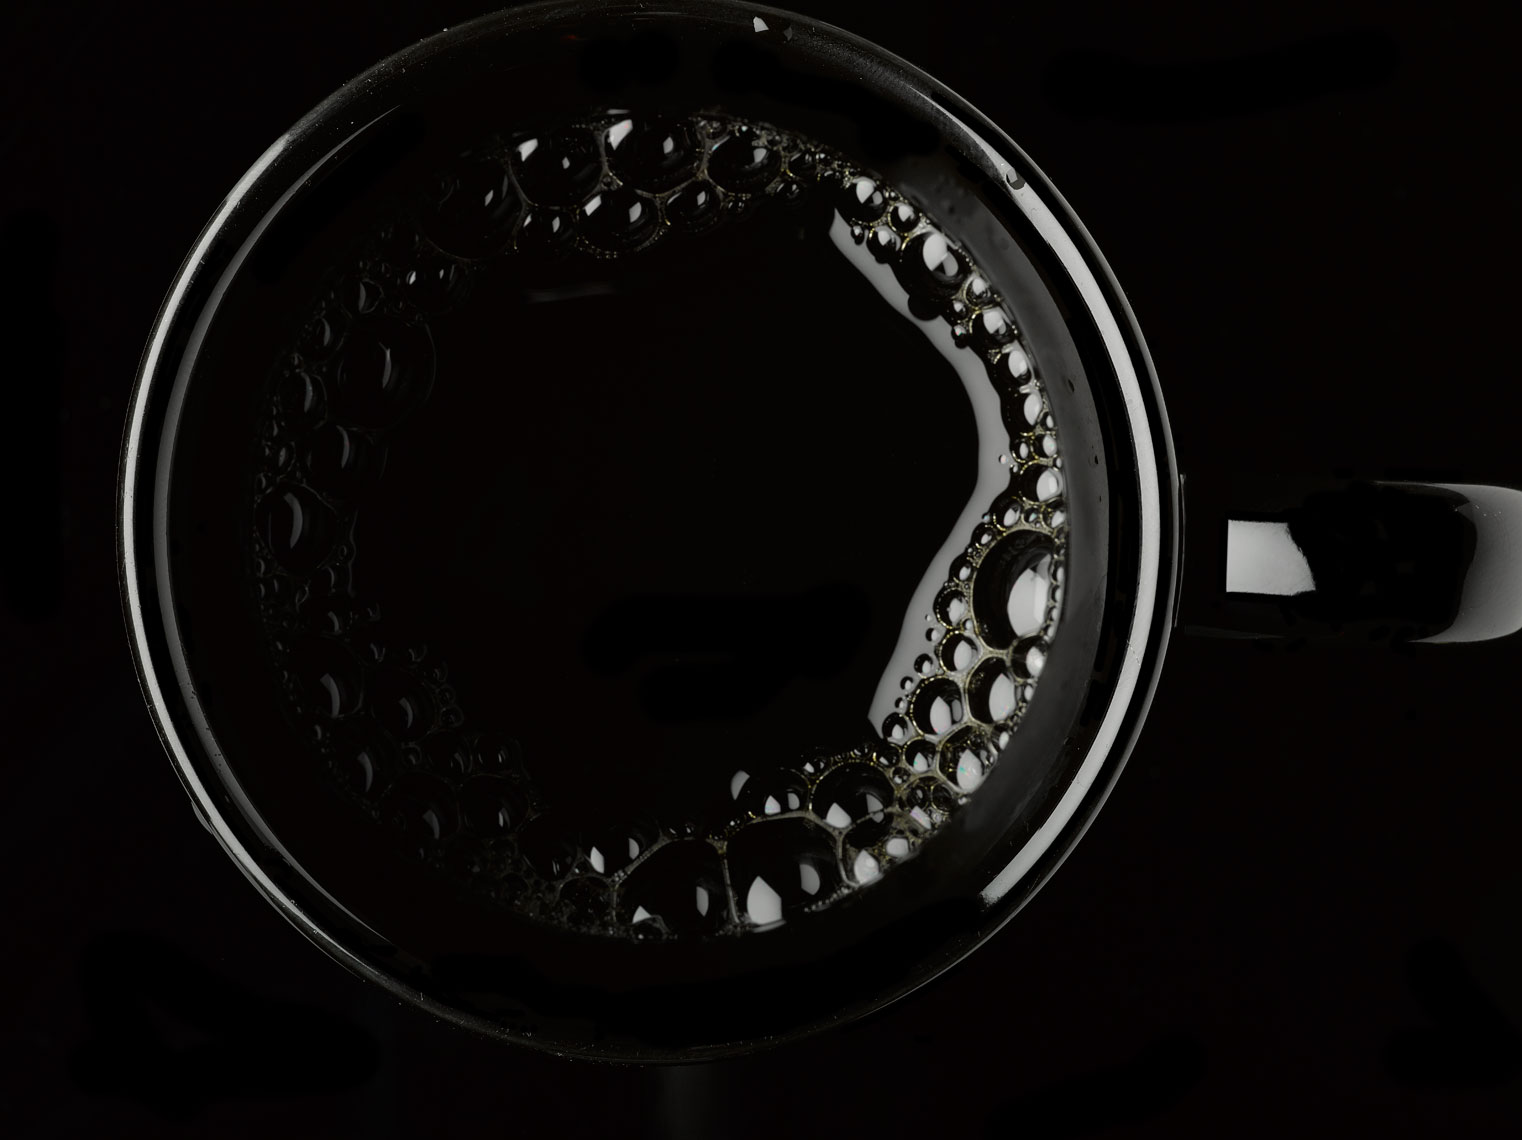 Coffee in a black cup from above on a black background